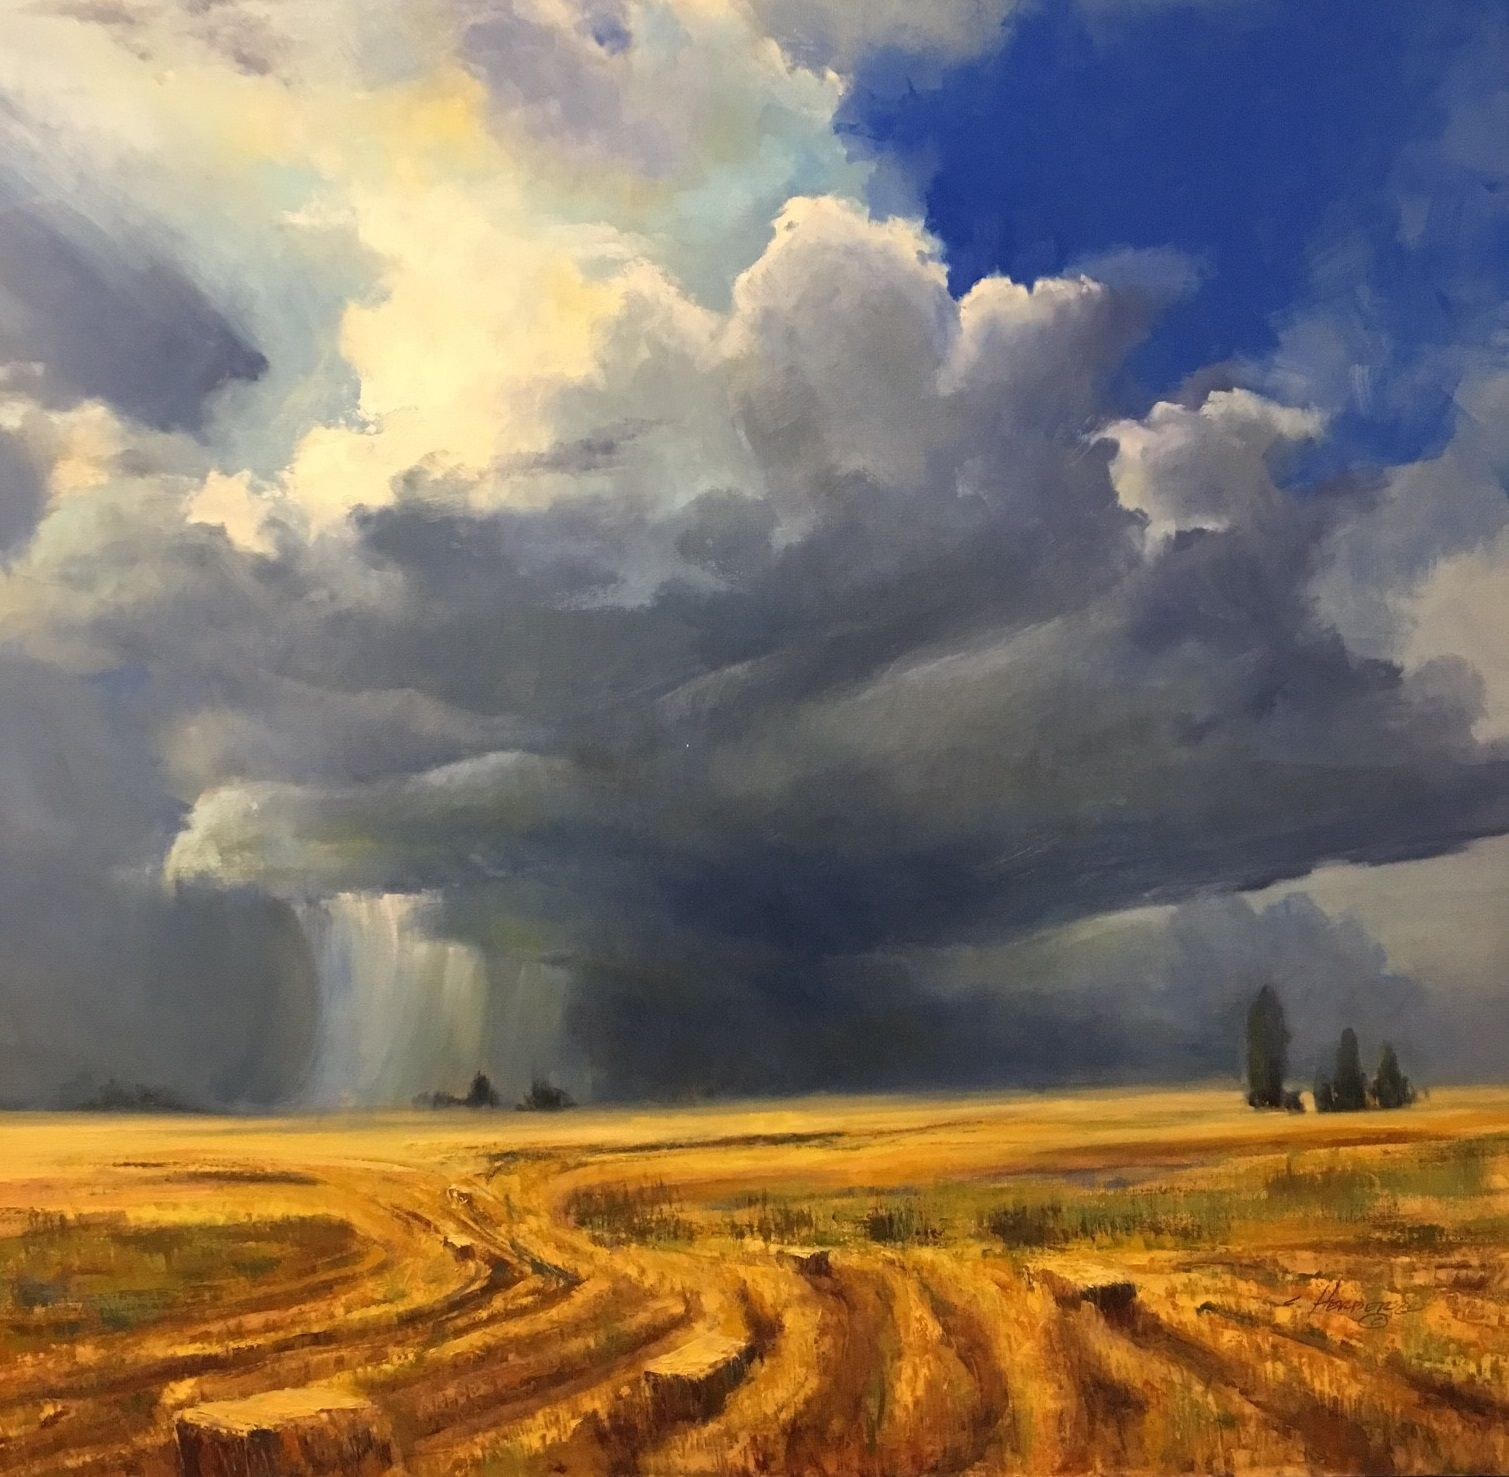 Wild Montana Skies, Solo Exhibition by Connie Herberg